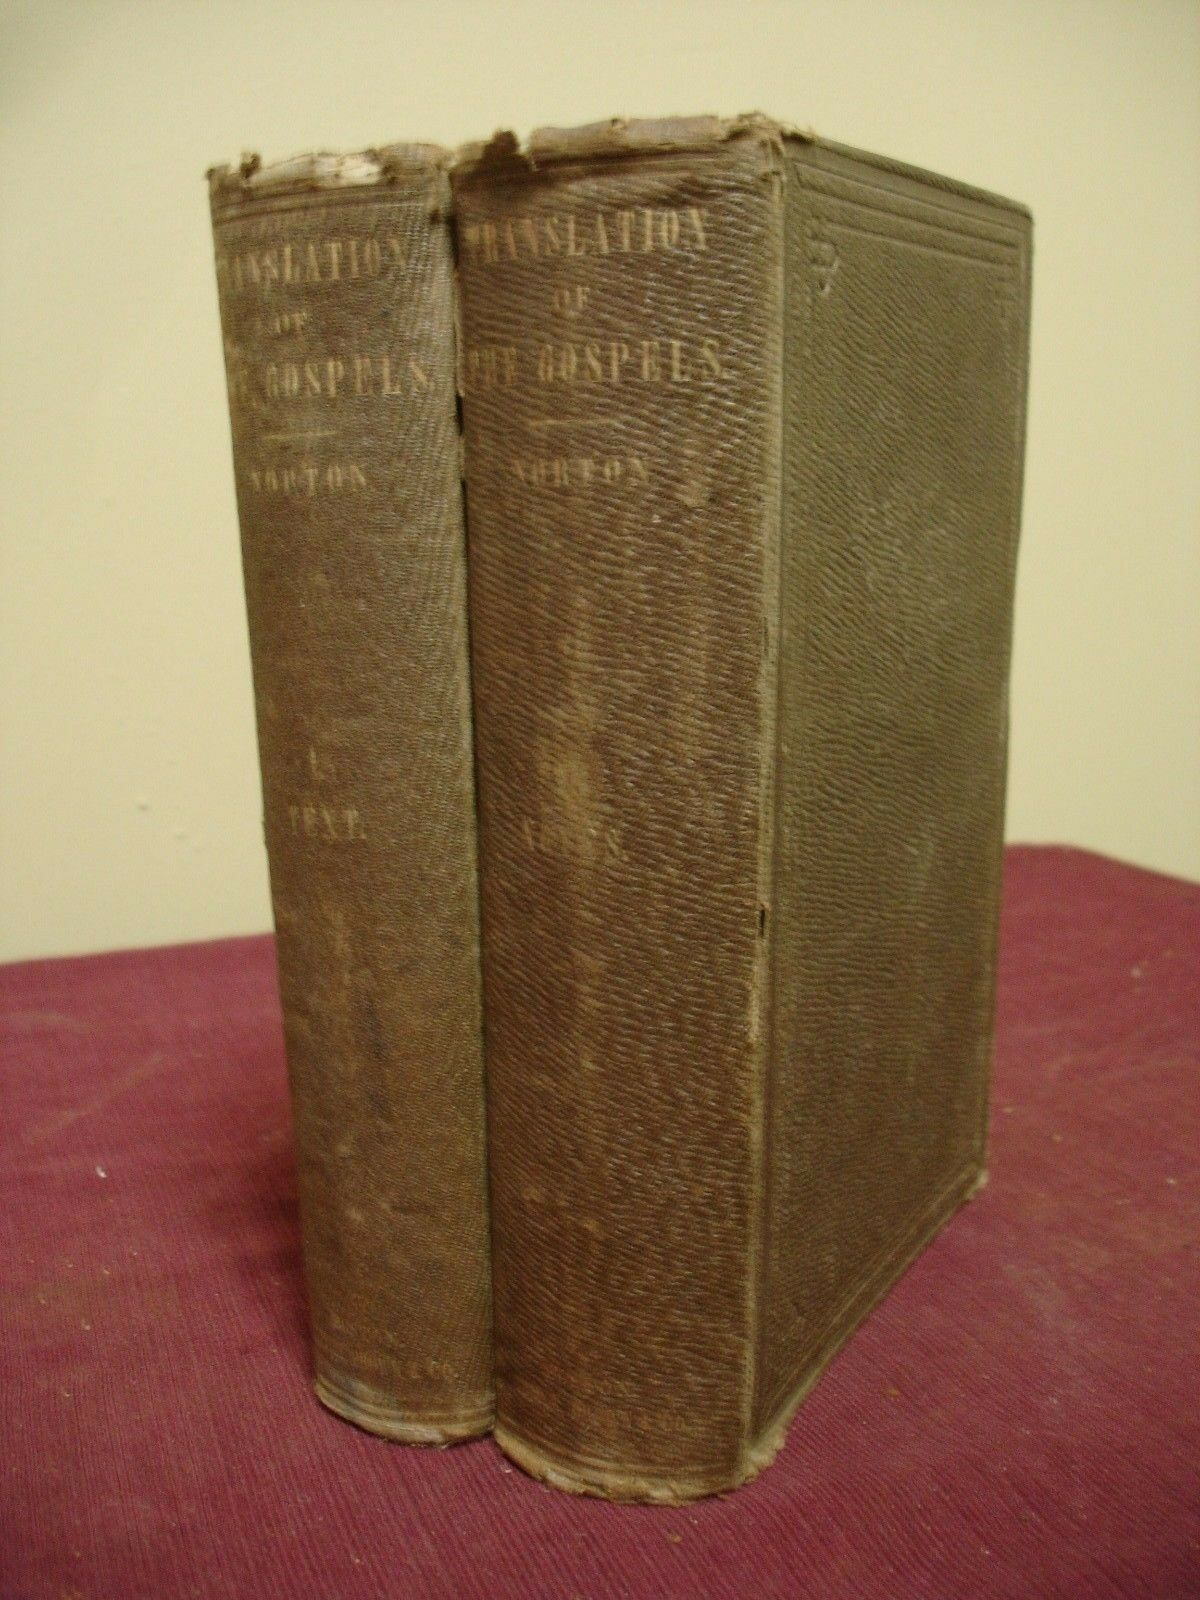 1855 A Translation of the Gospels with Notes by Andrew Norton - 2 Volumes